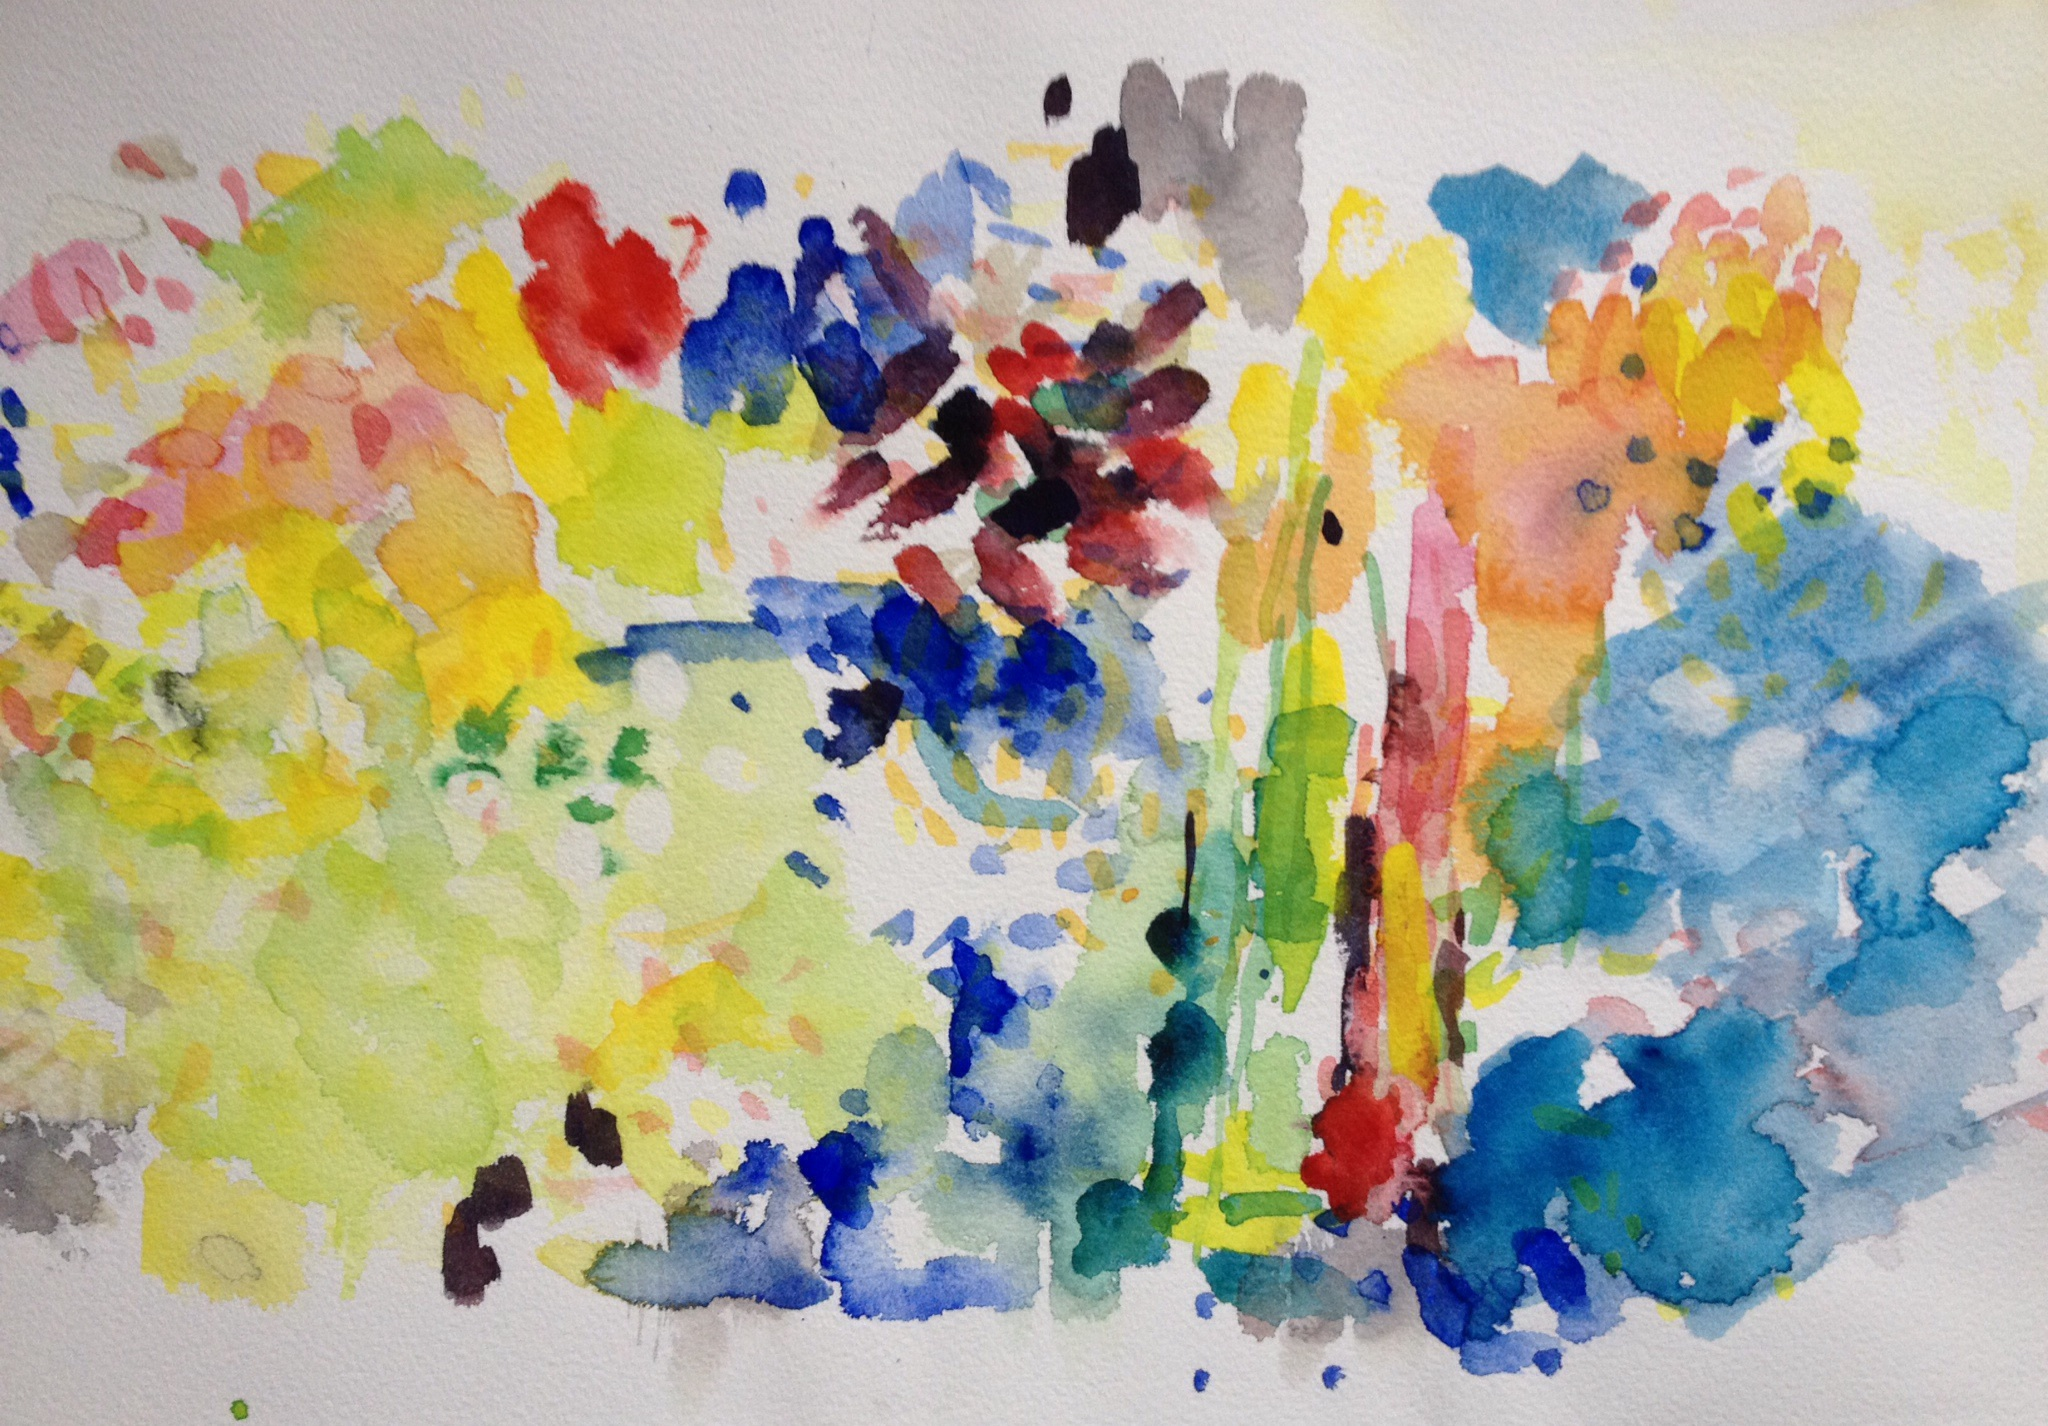 Watercolour Abstract with Spots